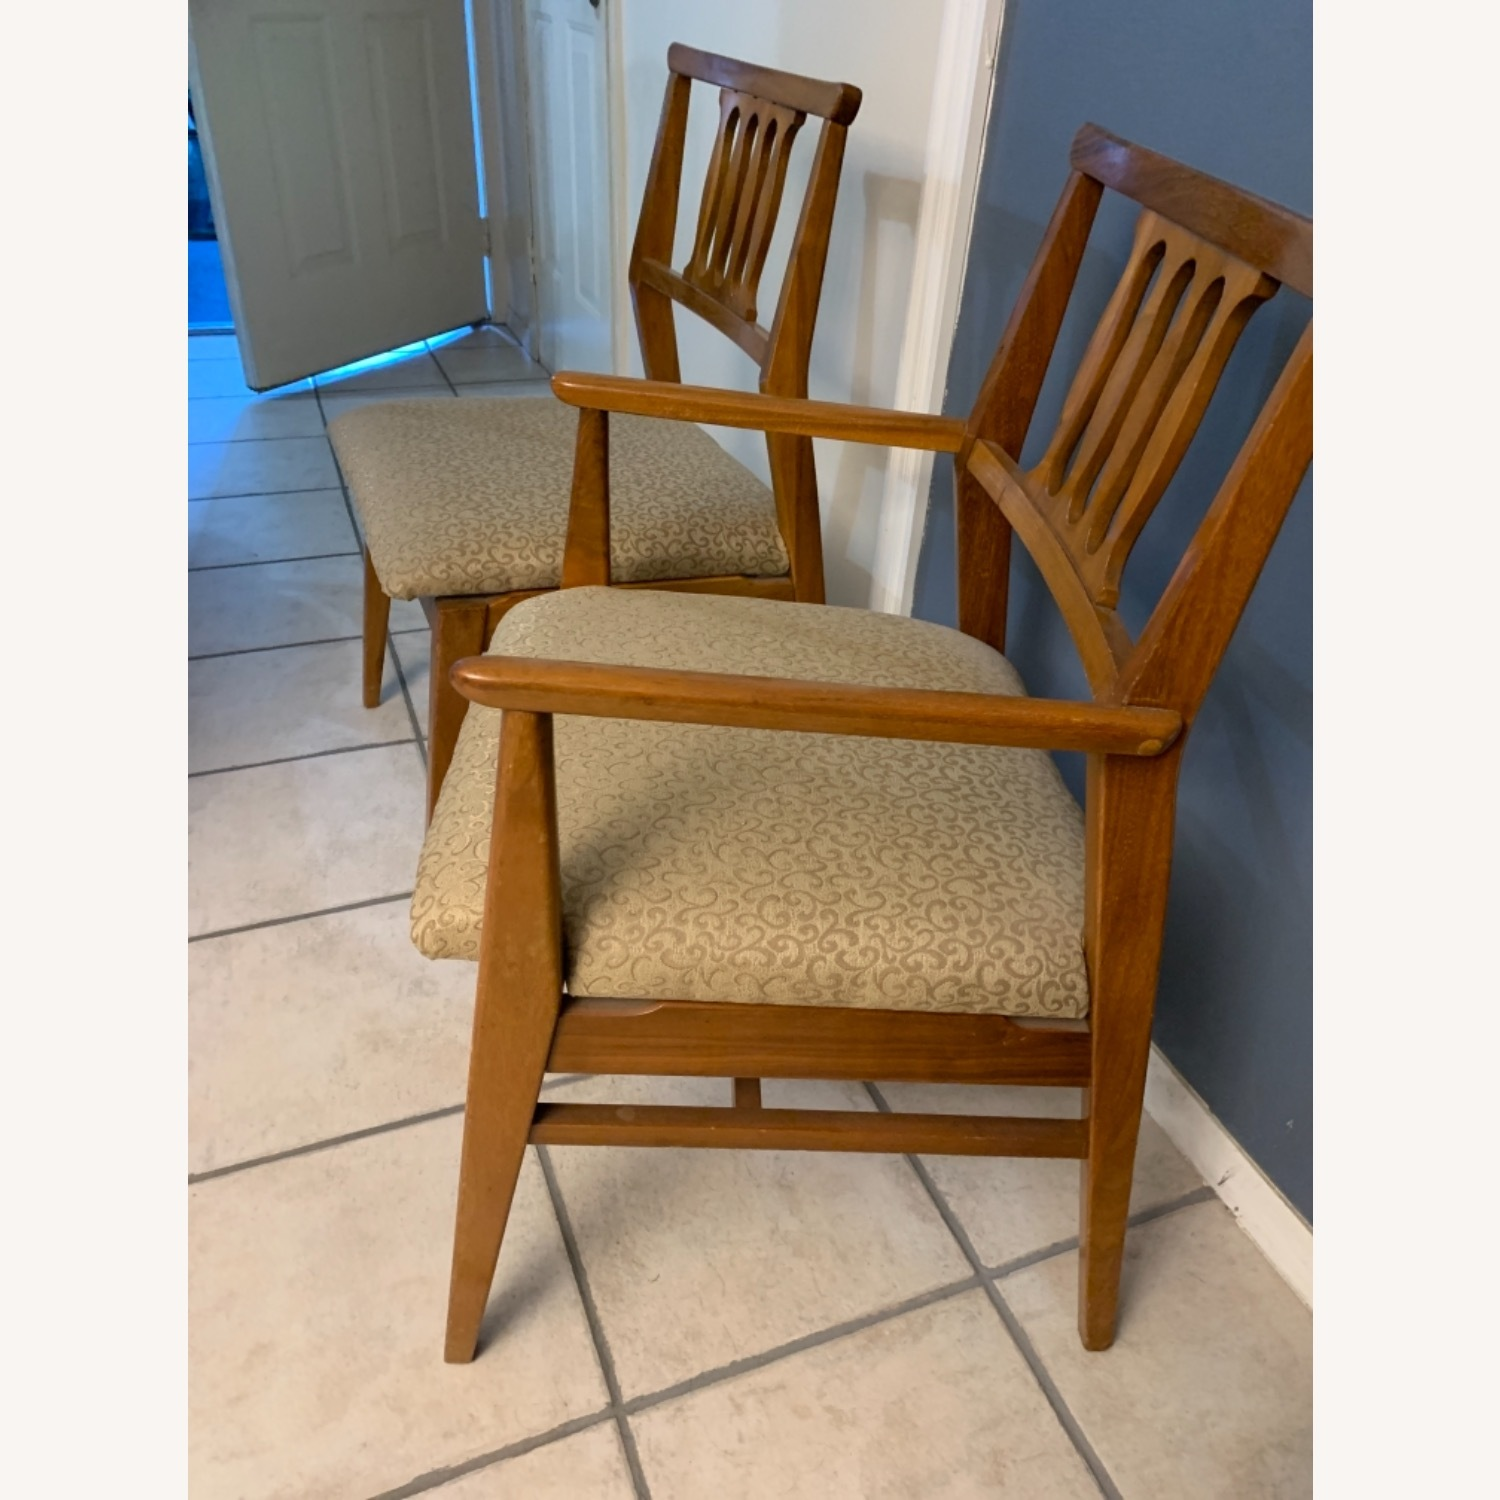 Hickory Furniture Company Dining Chair Set - image-3